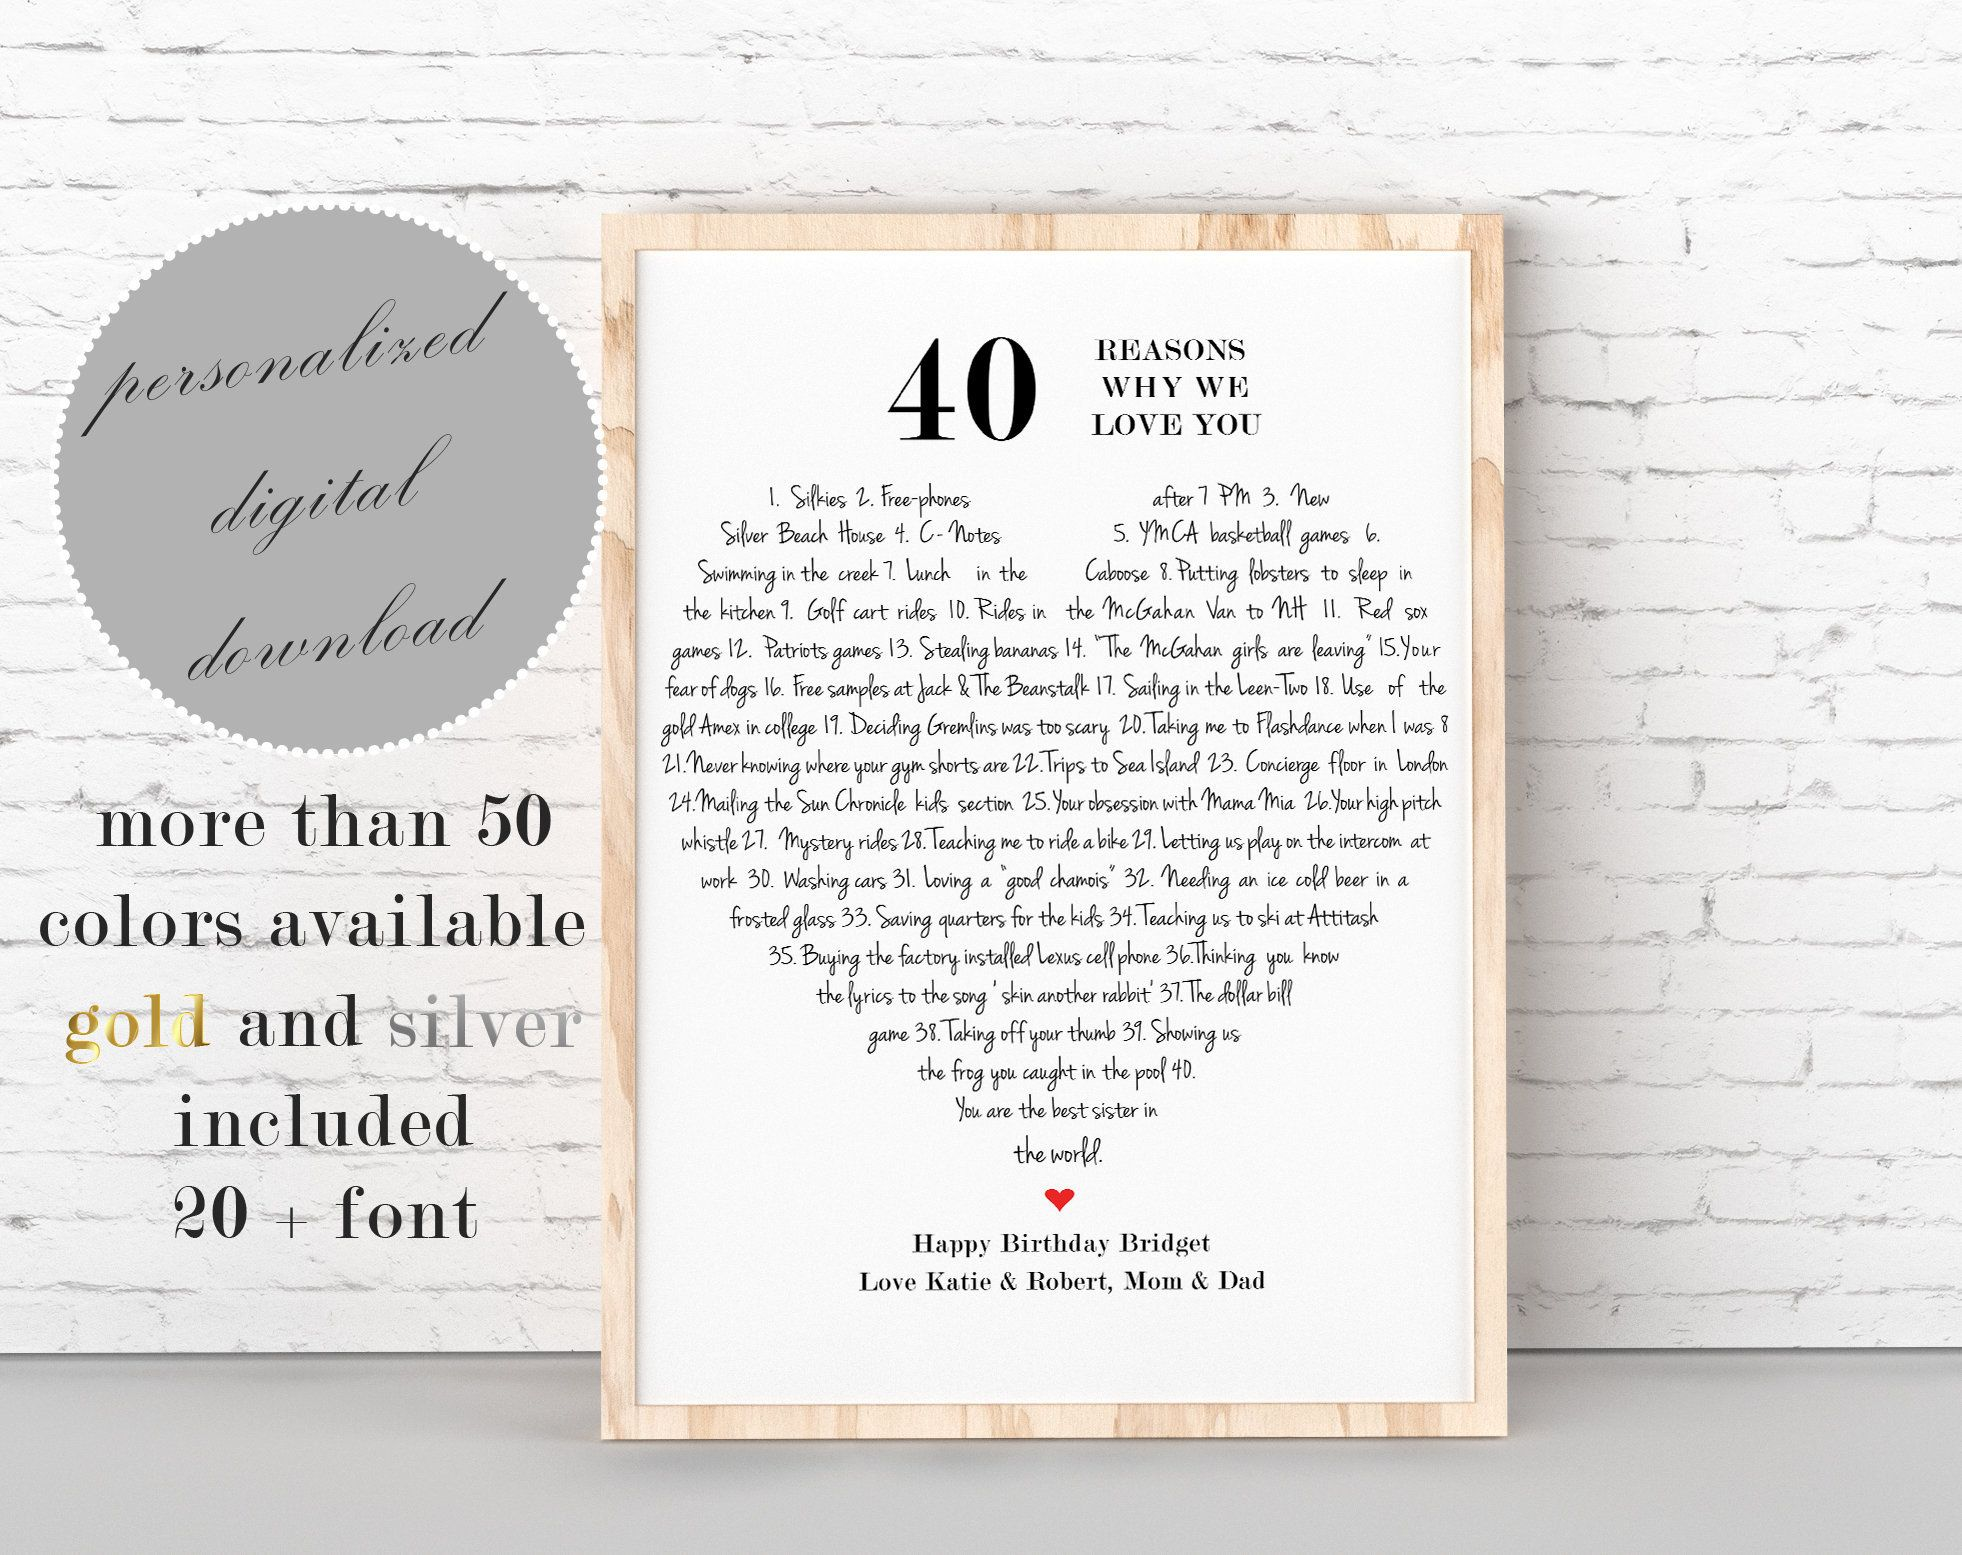 Pin By Rachel Parker On Art Happy Birthday Aunt Reasons I Love You Birthday Gifts For Grandma